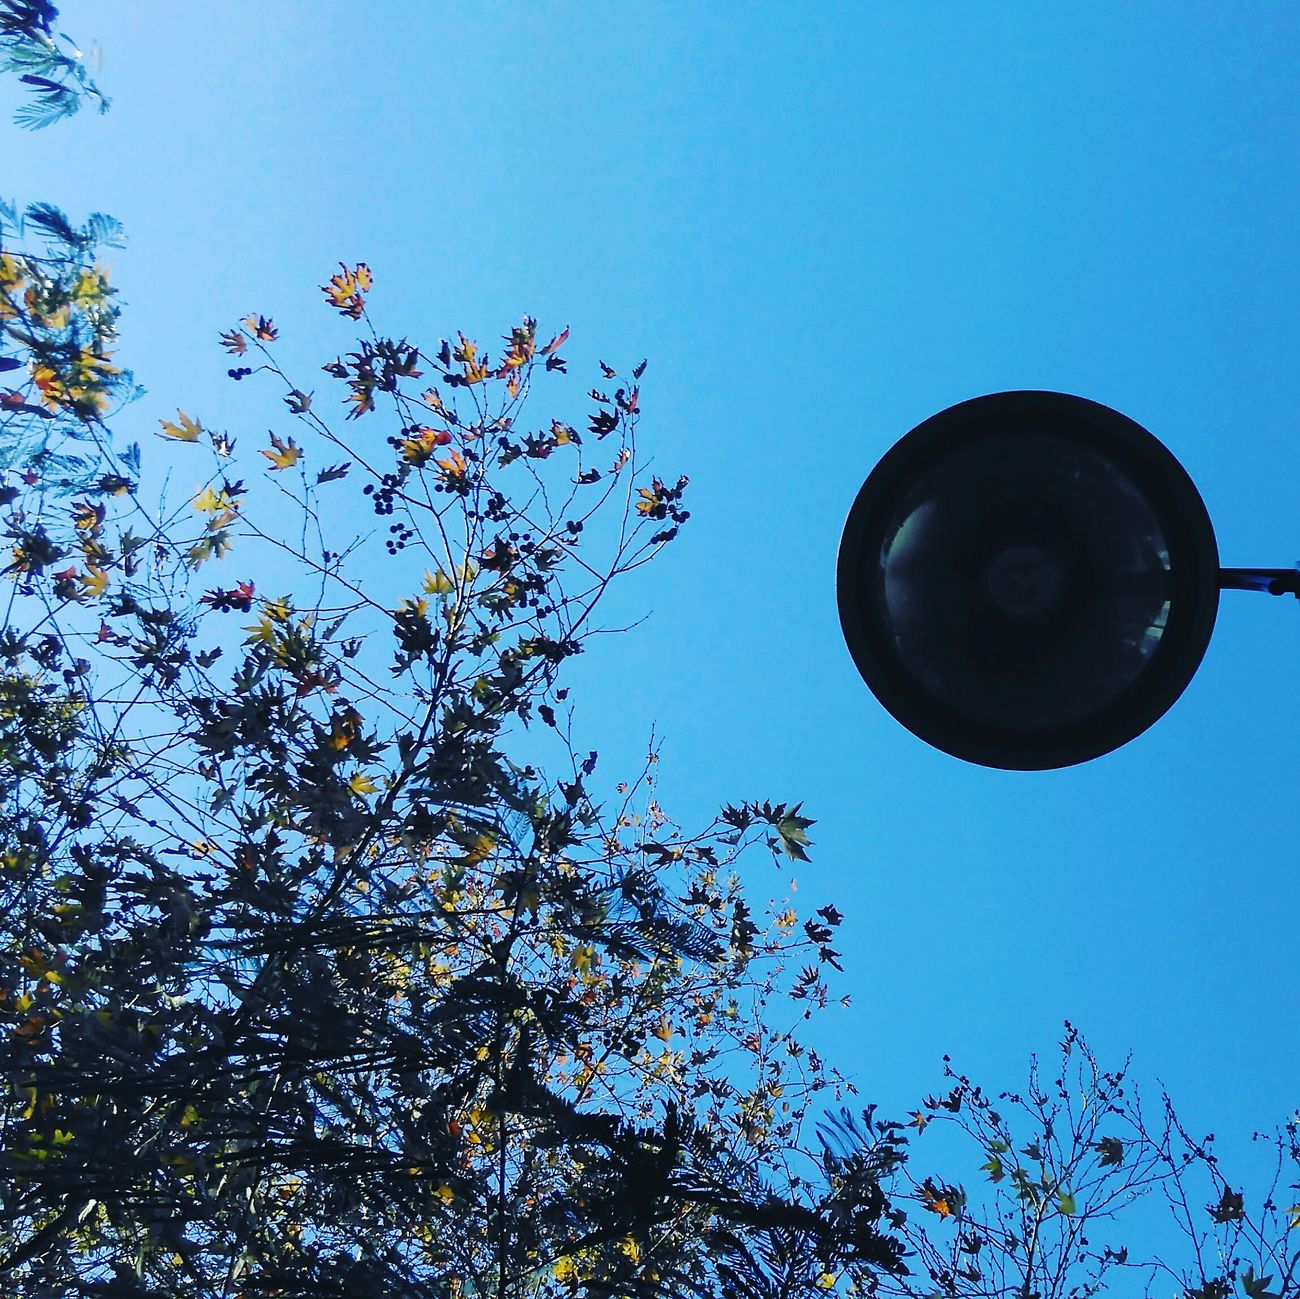 The dark light..Low Angle View Sky Flying Clear Sky Outdoors No People Day Nature Tree Moon Darkness And Light Dark Light Nature Photography Sundaymorning Silence Of Nature Urban Skyline Urban Exploration Urban Photography Streetphotography Blue Sky Blue Sky_collection Leaves And Sky Leaves